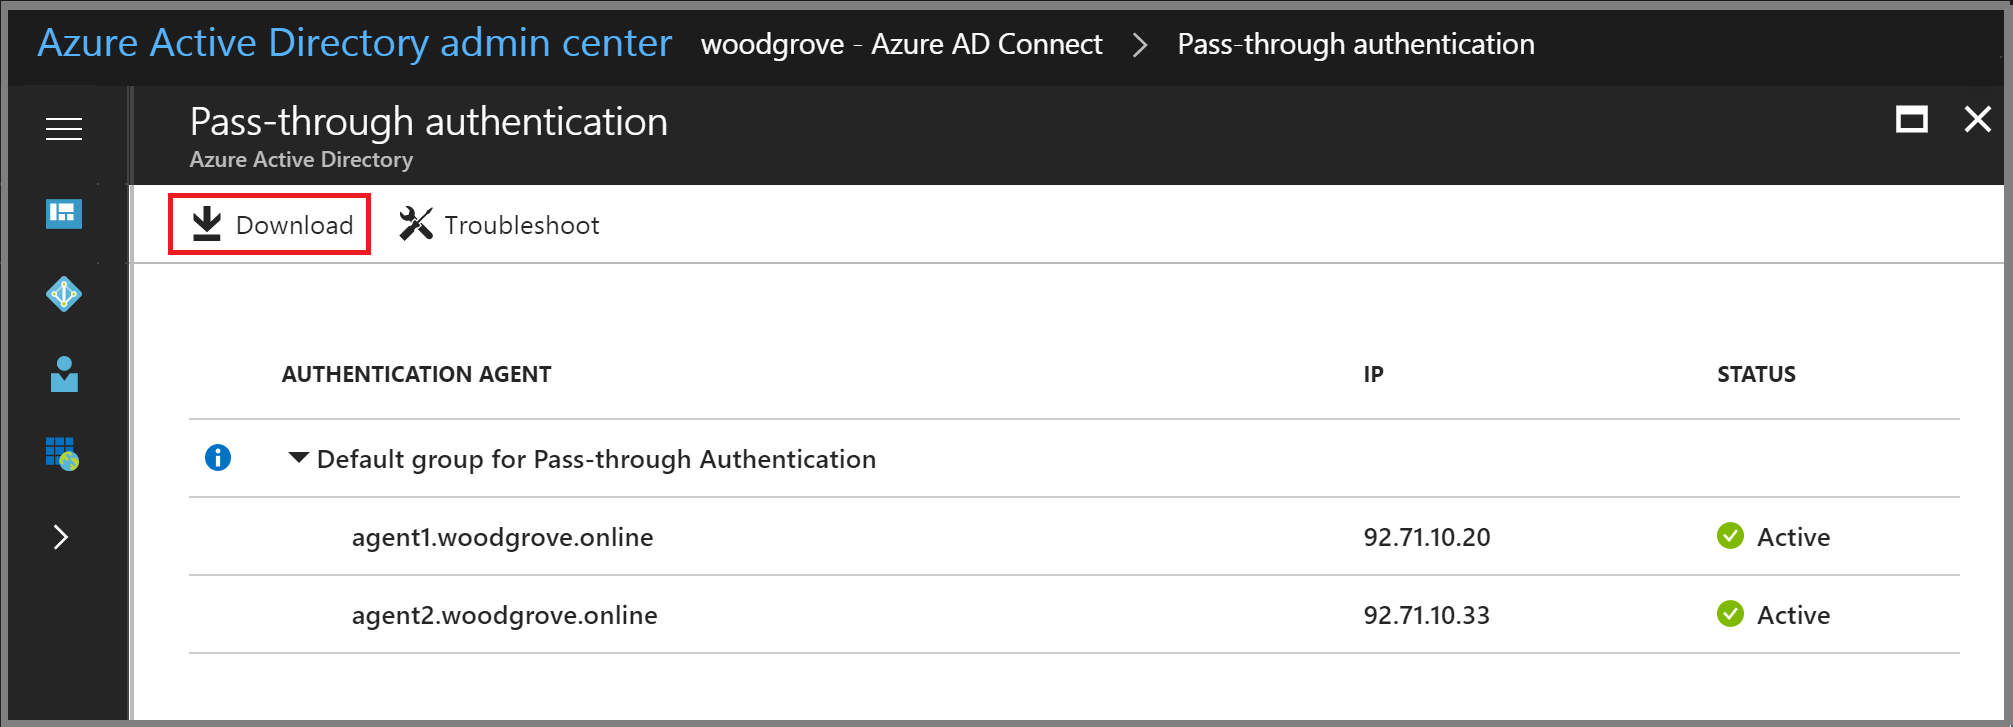 Azure Active Directory admin center: Download Authentication Agent button